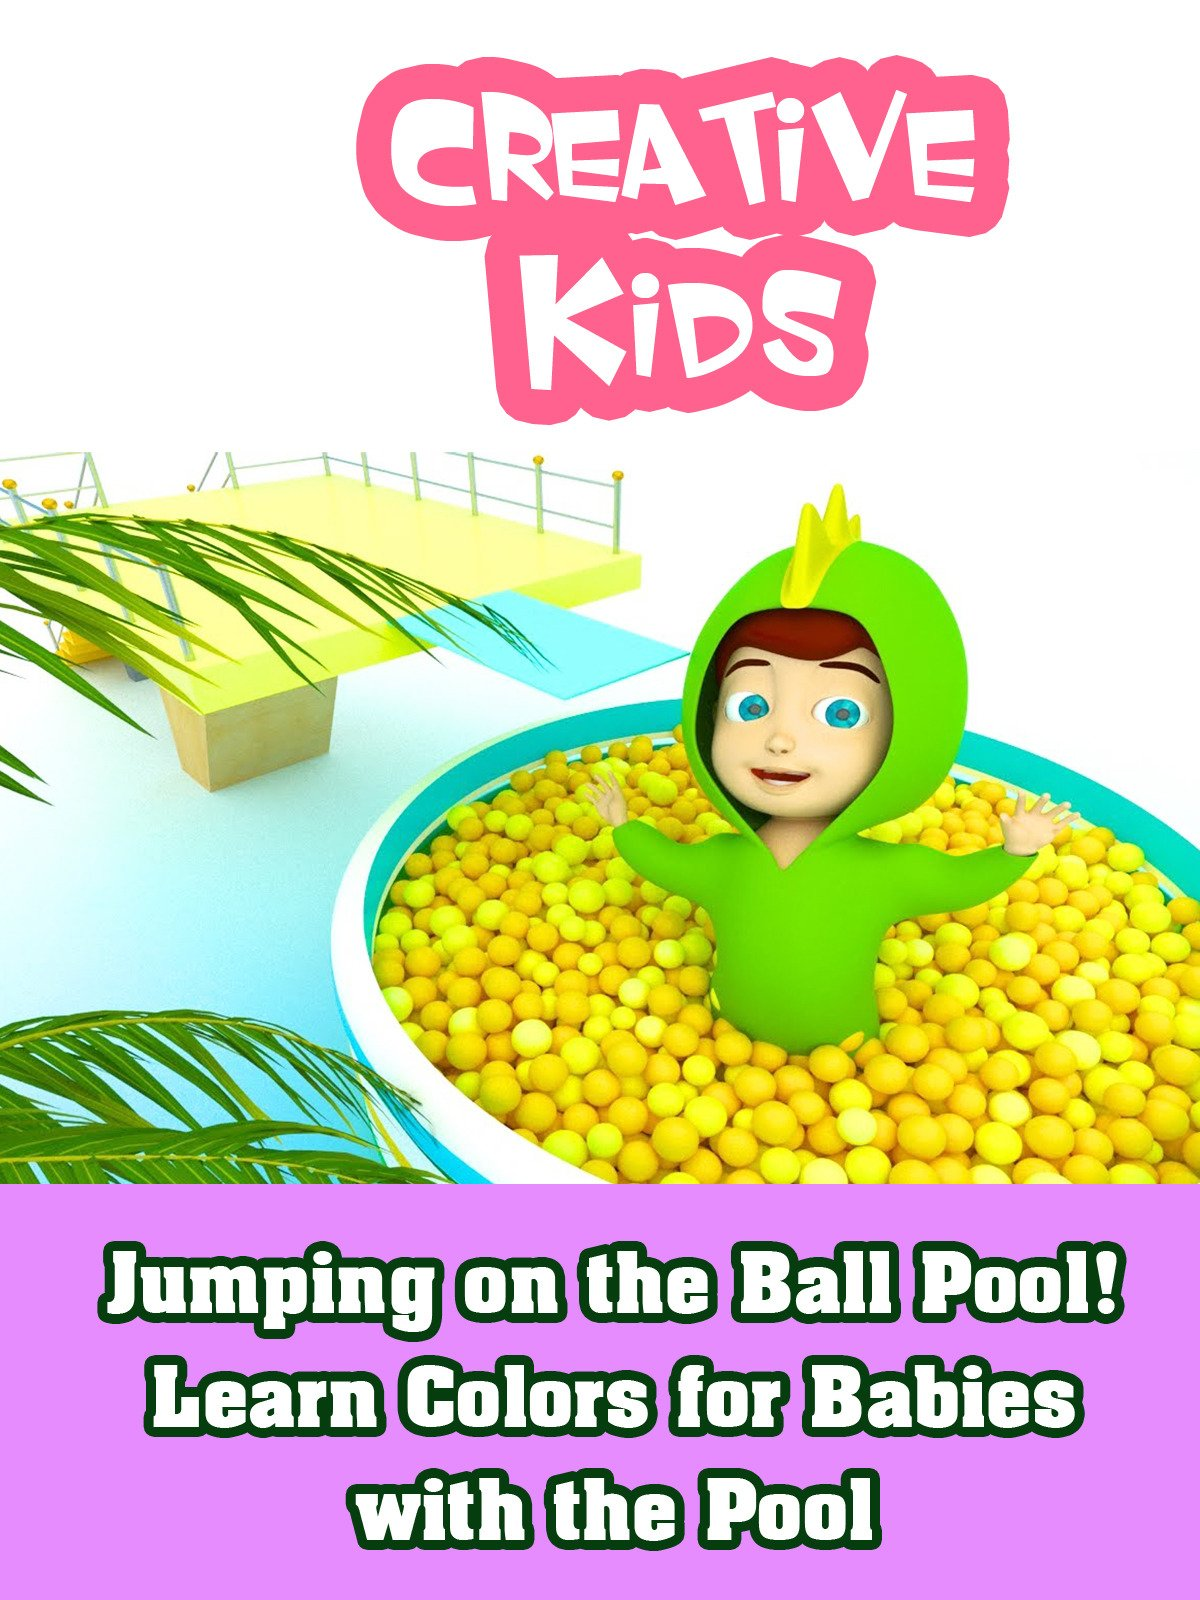 Jumping on the Ball Pool! Learn Colors for Babies with the Pool